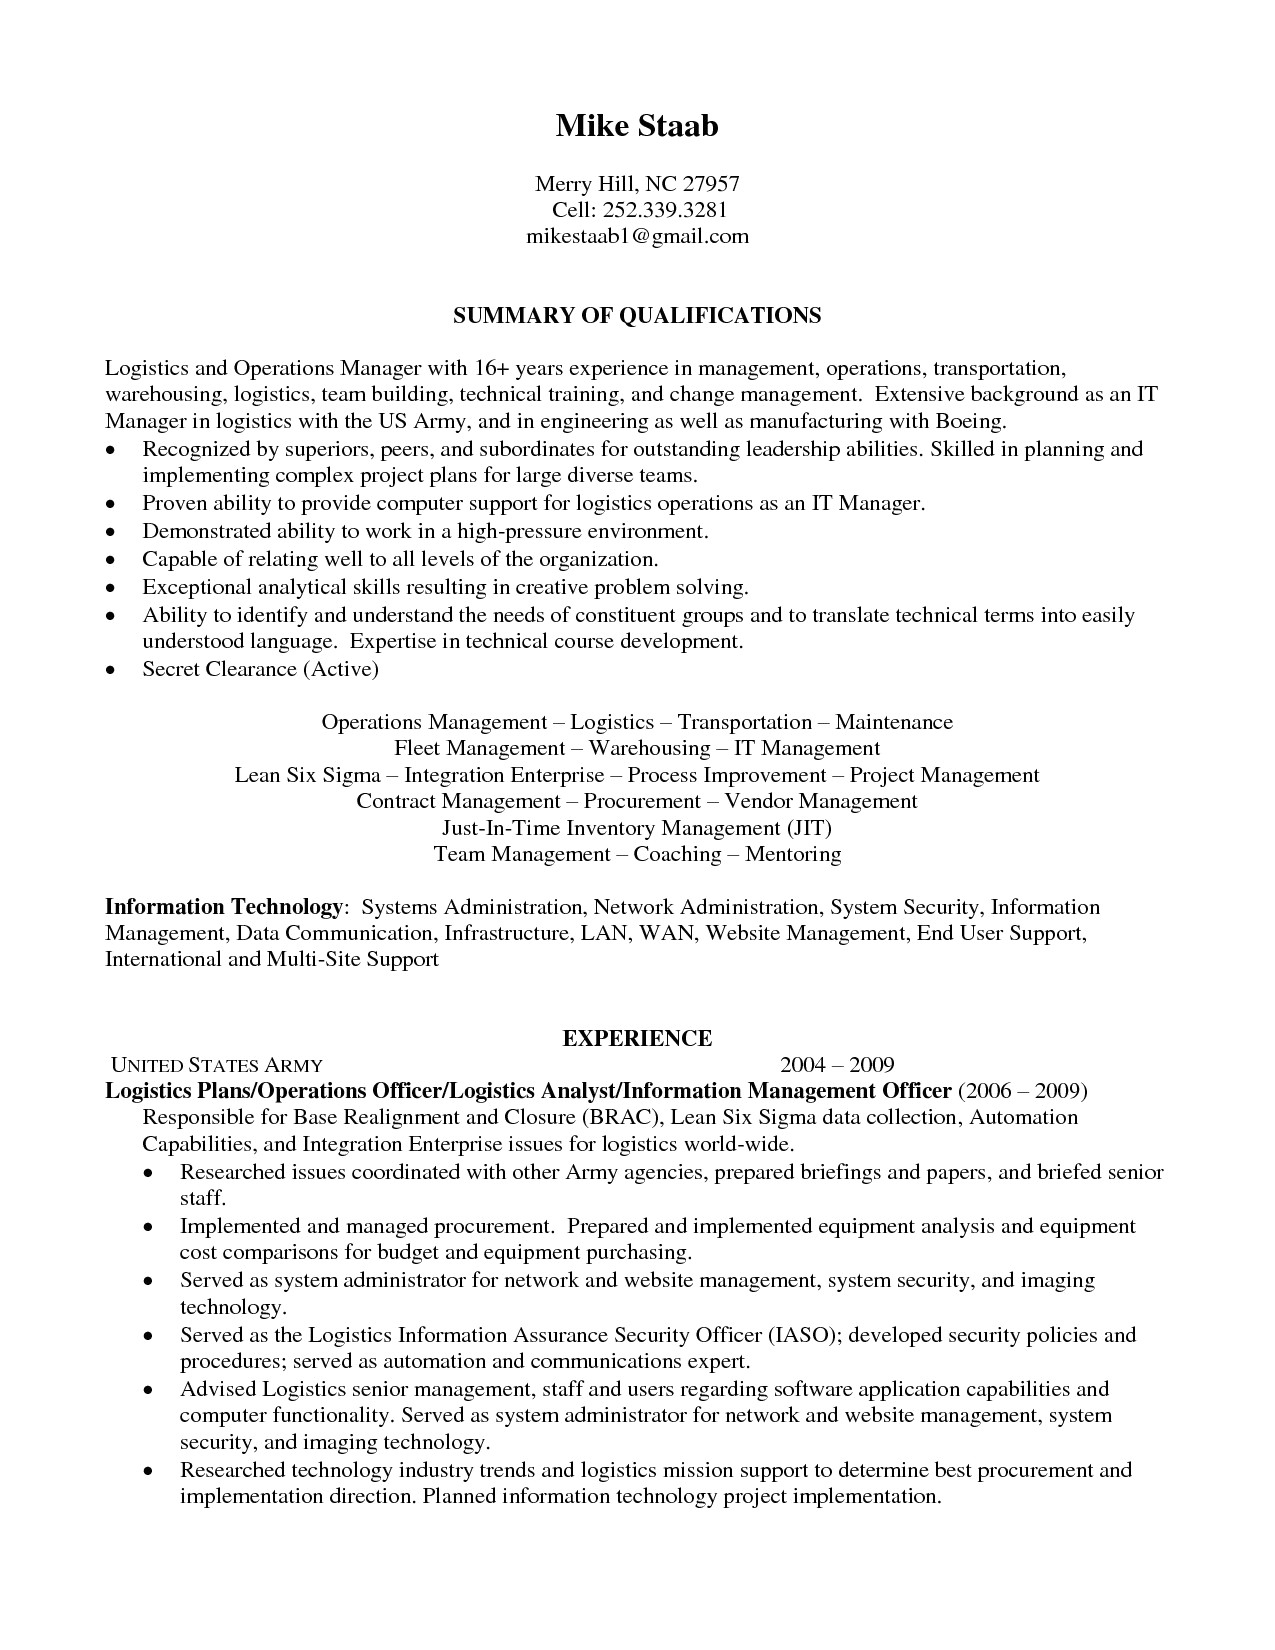 system administrator resume template Collection-Related Post system administrator resume regarding Fresh Grapher Resume Sample Beautiful Resume Quotes 0d 17-g